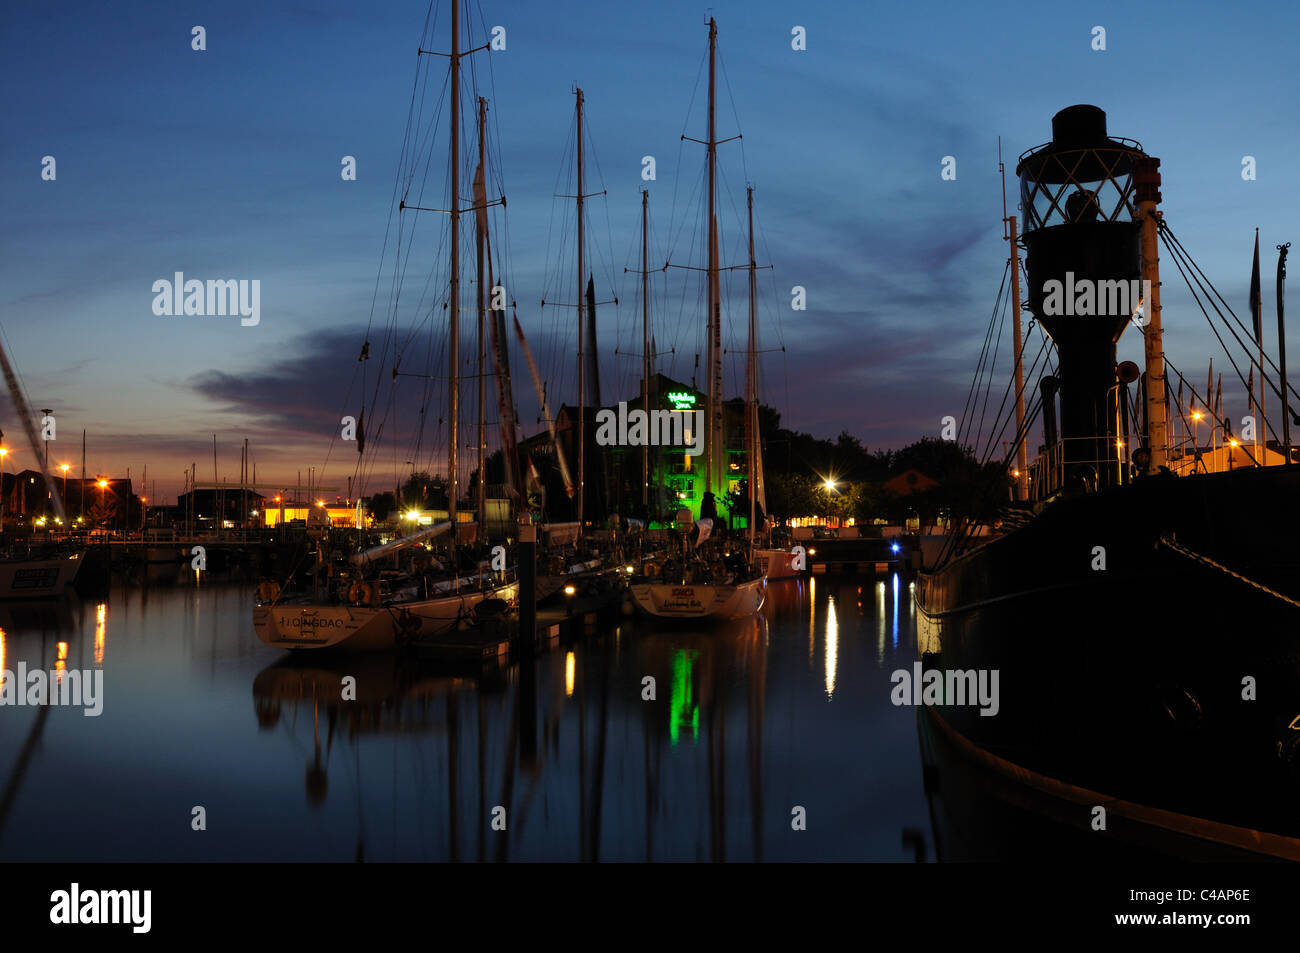 Hull Marina at dusk with the Spurn Lightship in the foreground, Yorkshire, England Stock Photo